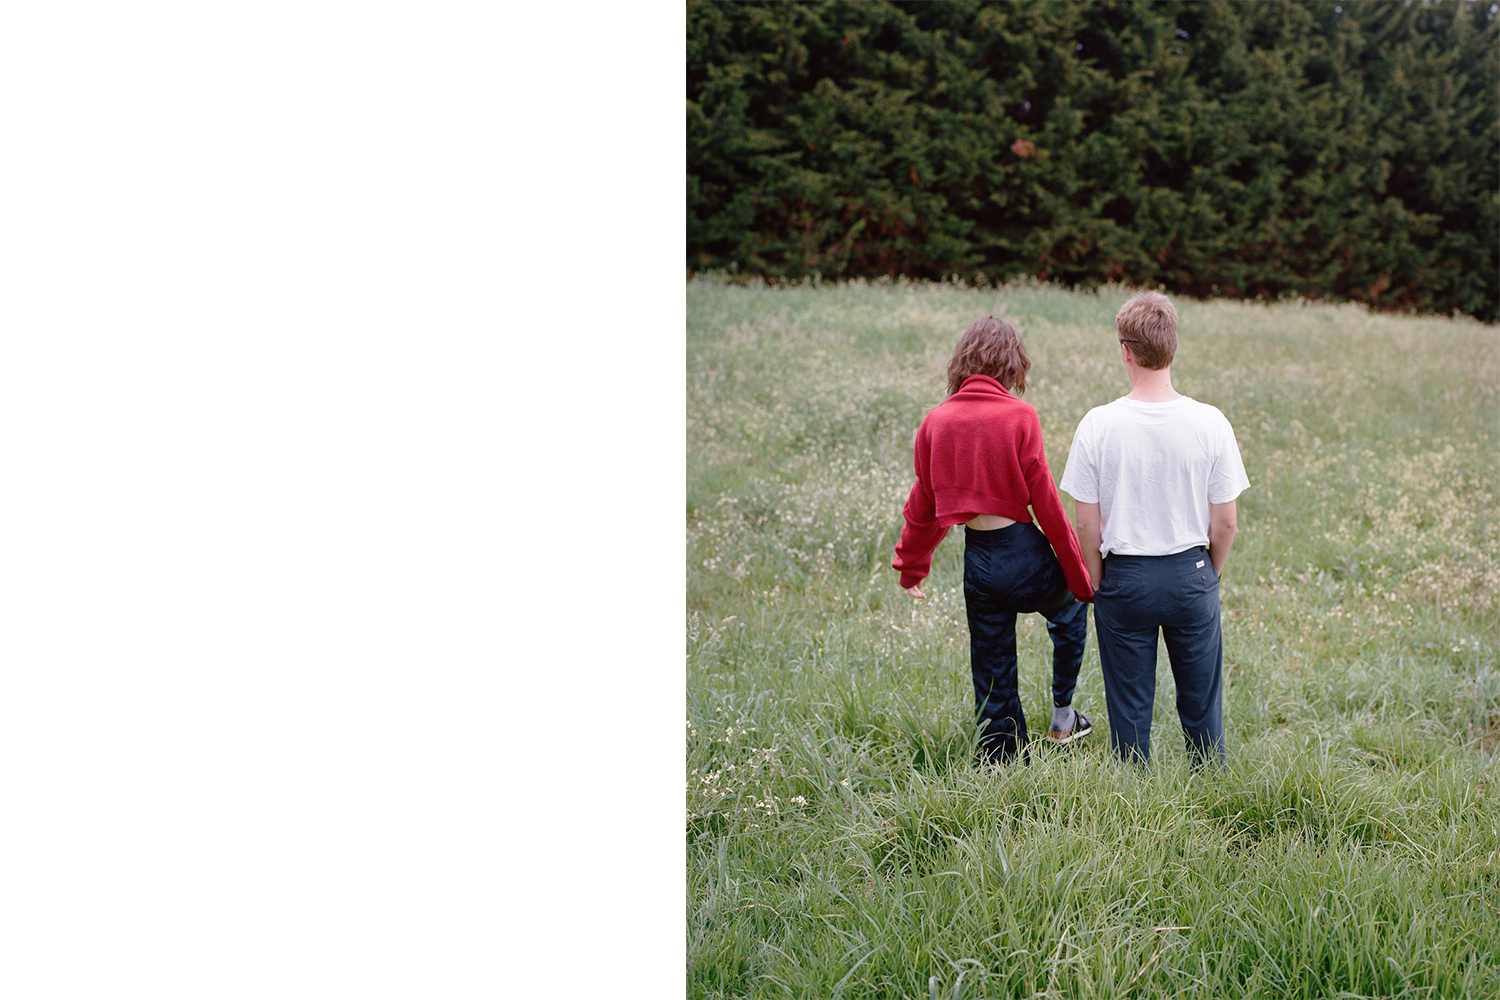 Two People for Acclaim Magazine     https://acclaimmag.com/music/a-duo-called-two-people/